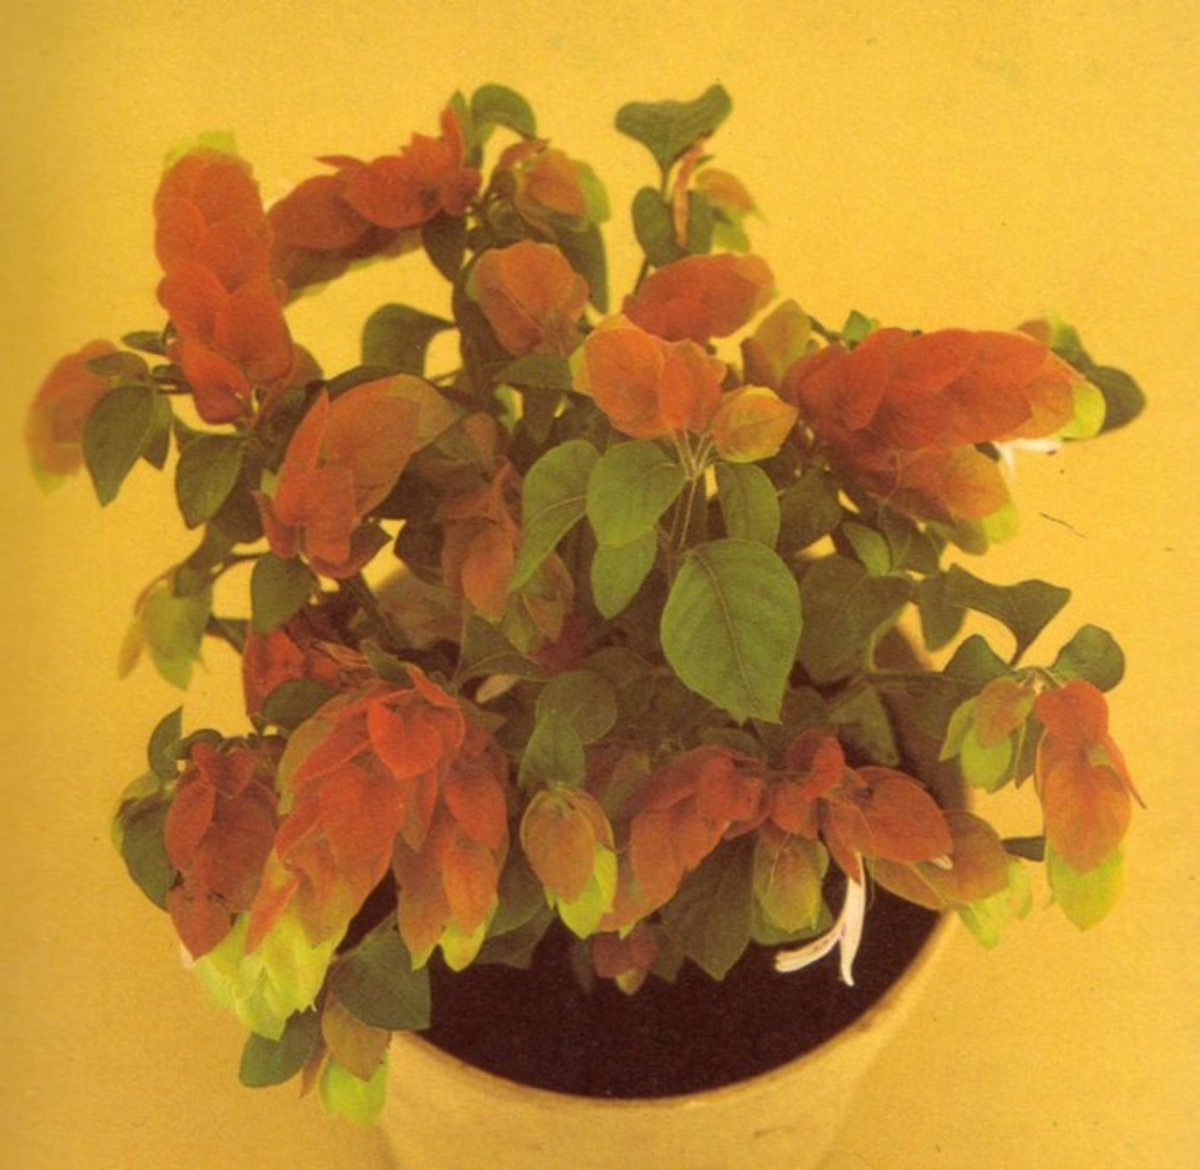 A well-grown, compact shrimp plant of Beloperone guttata, which may also be marketed as Drejerella guttata or Justicia brandegeana.